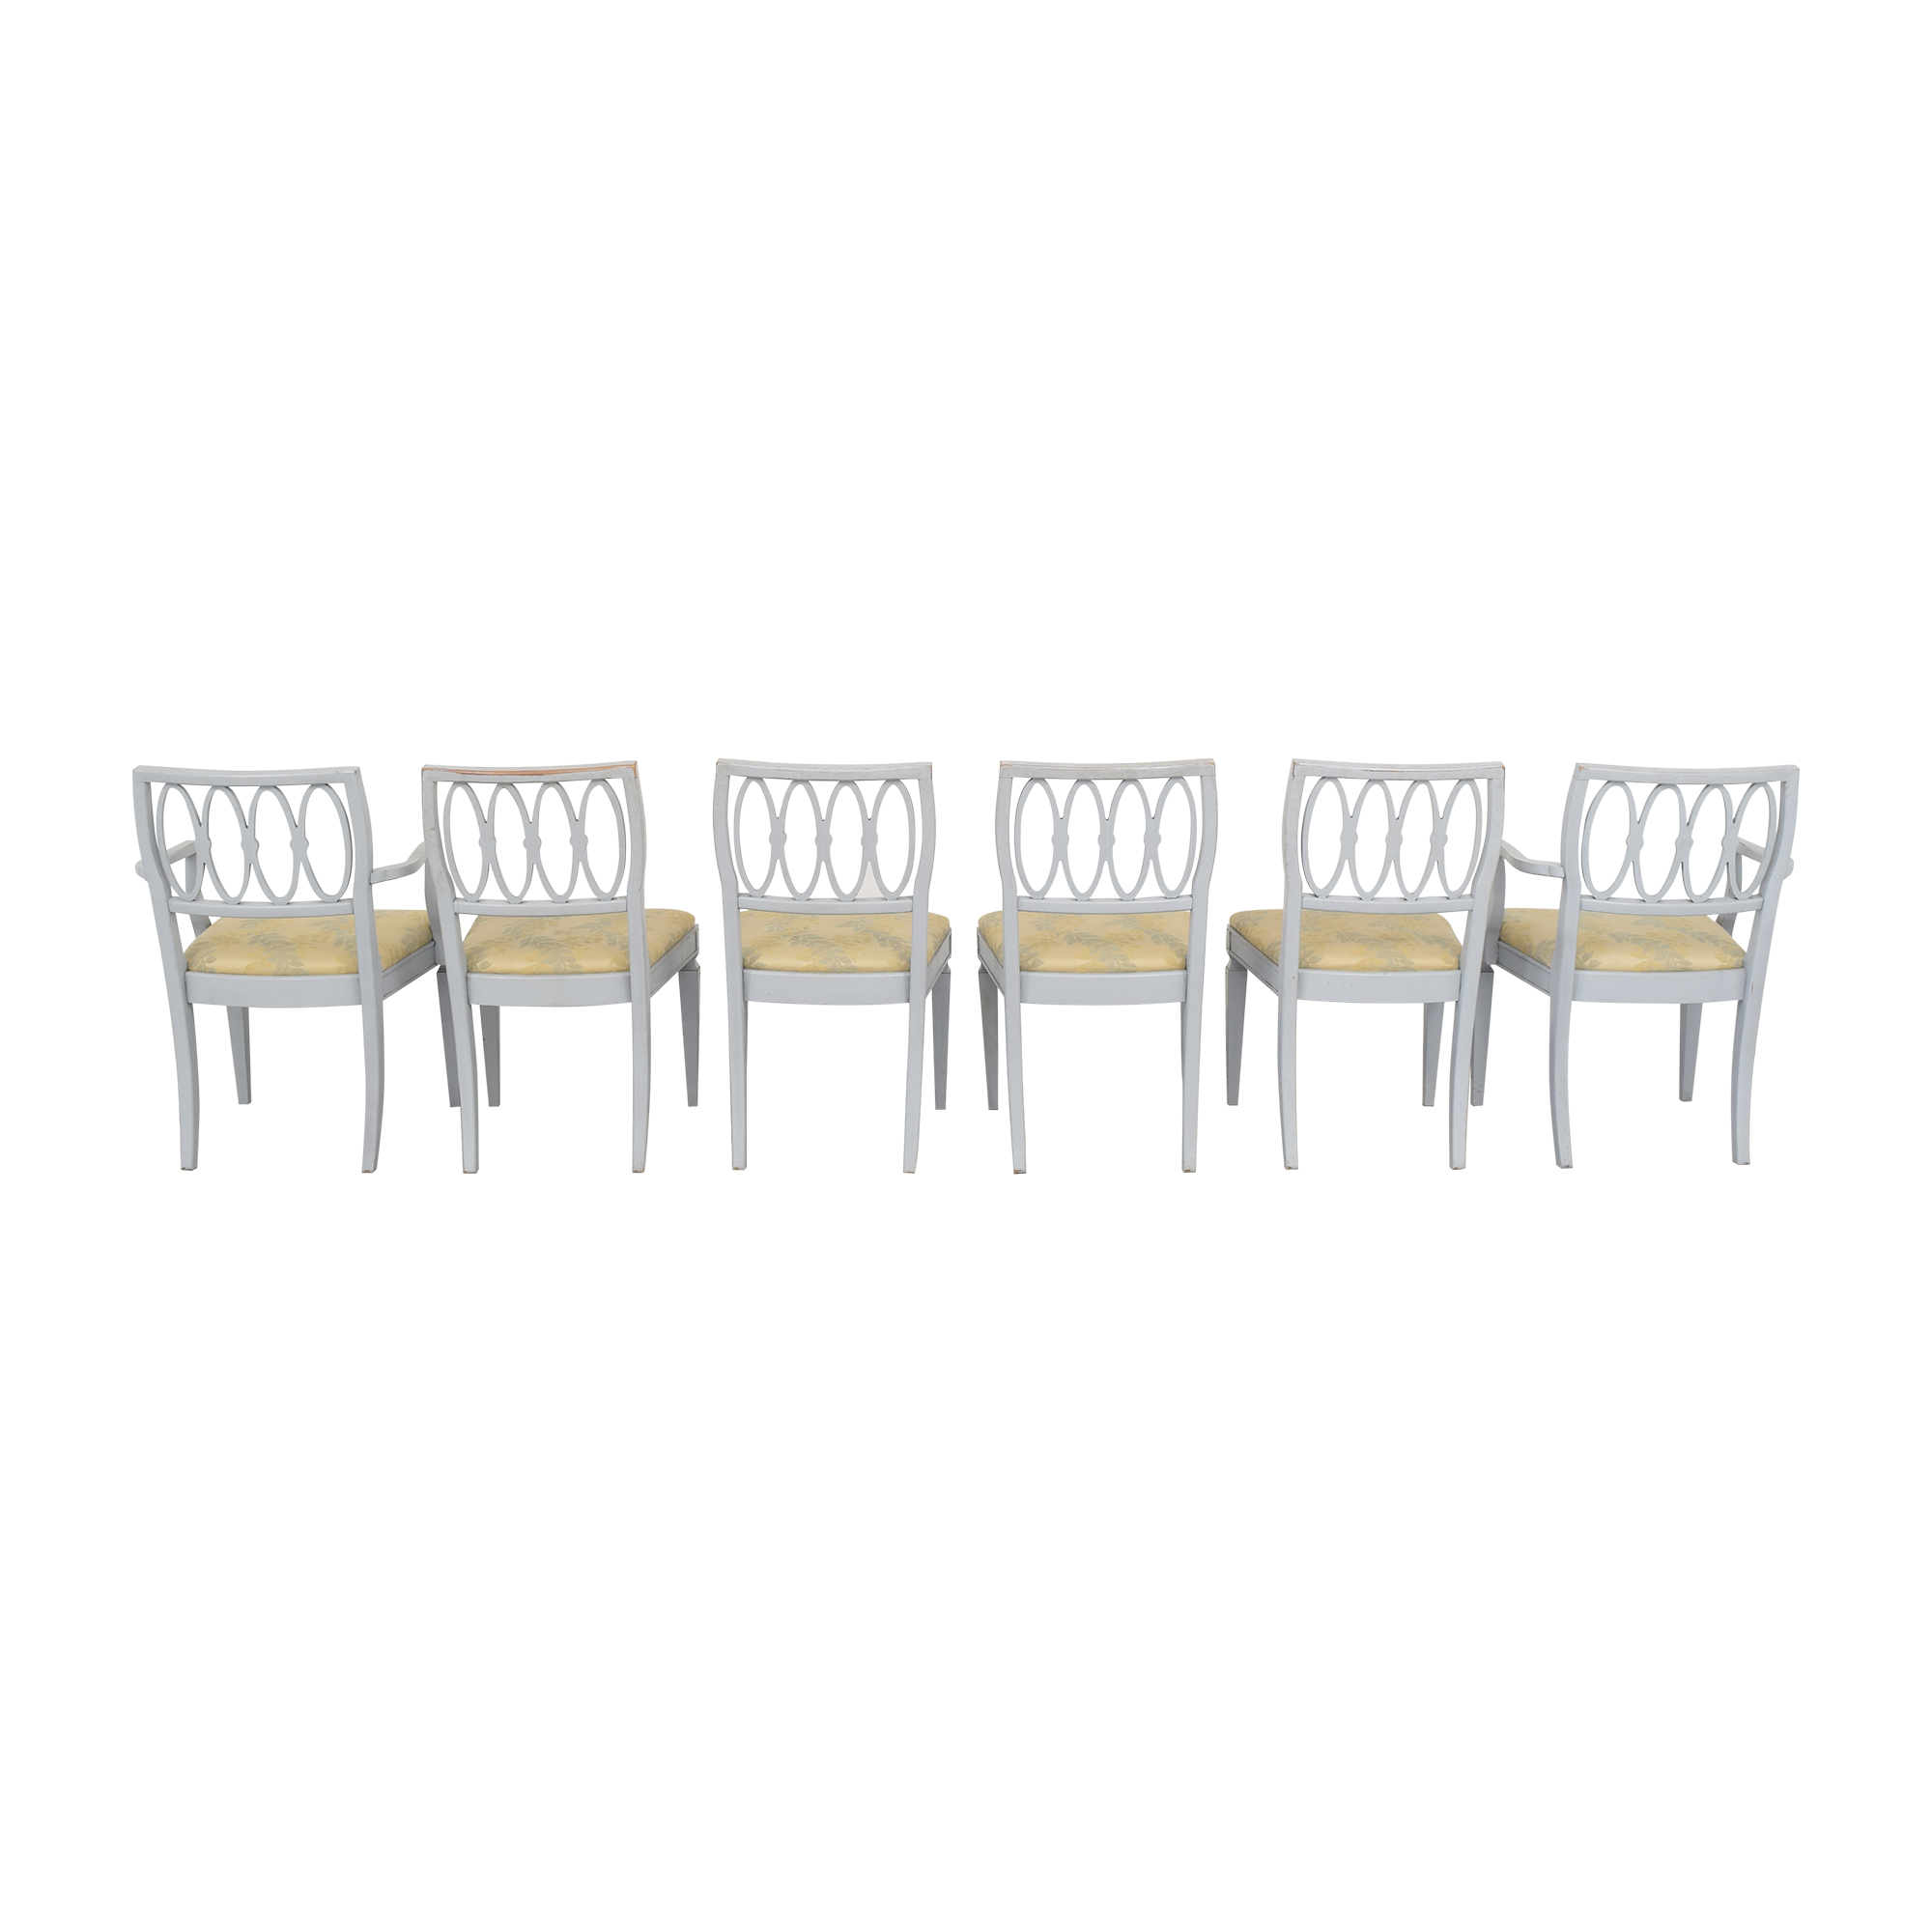 Thomasville Hollywood Regency Style Dining Chairs / Chairs